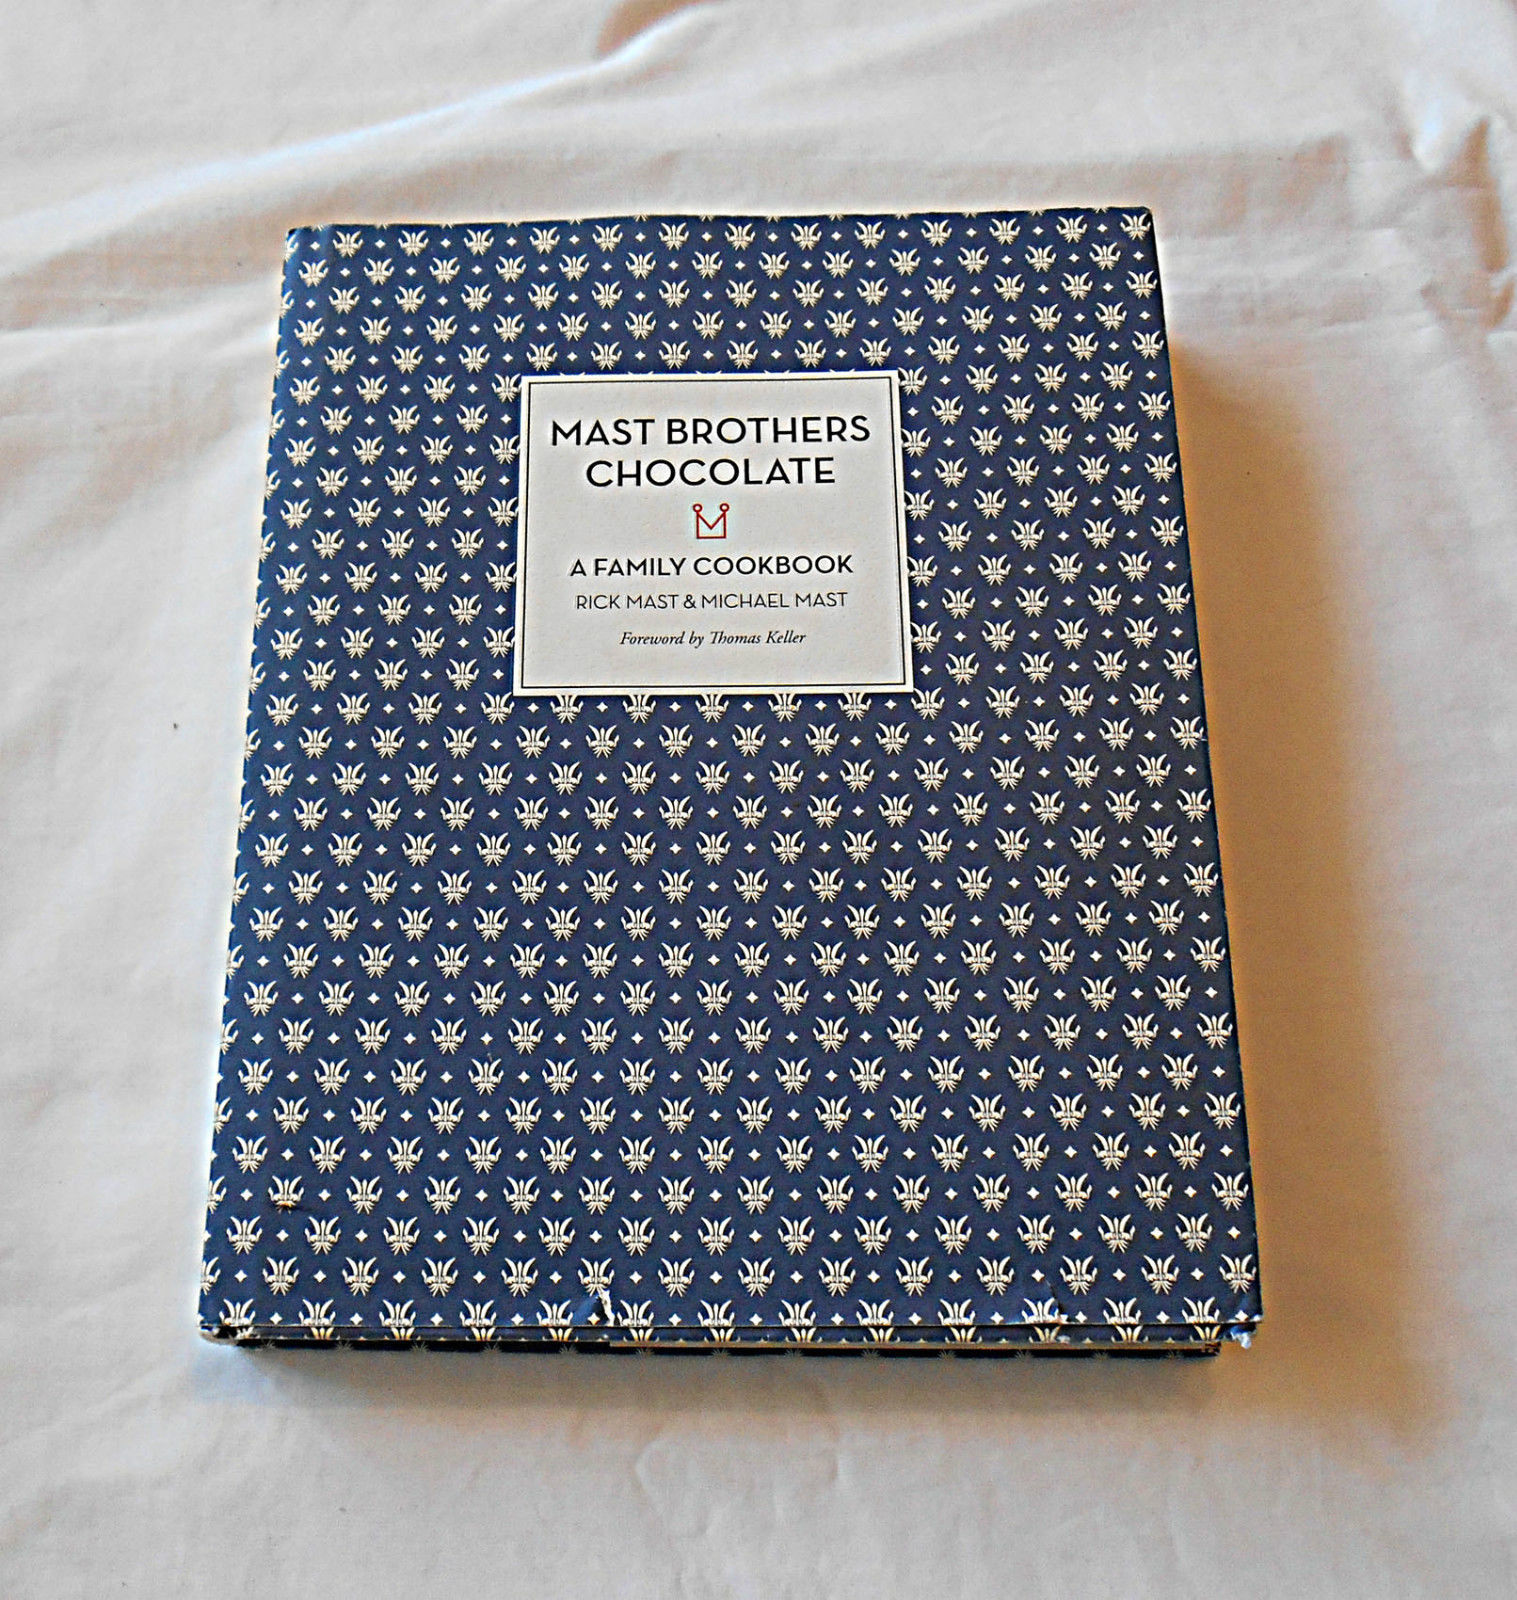 Primary image for Mast Brothers Chocolate: A Family Cookbook by Mast, Rick, Mast, Michael